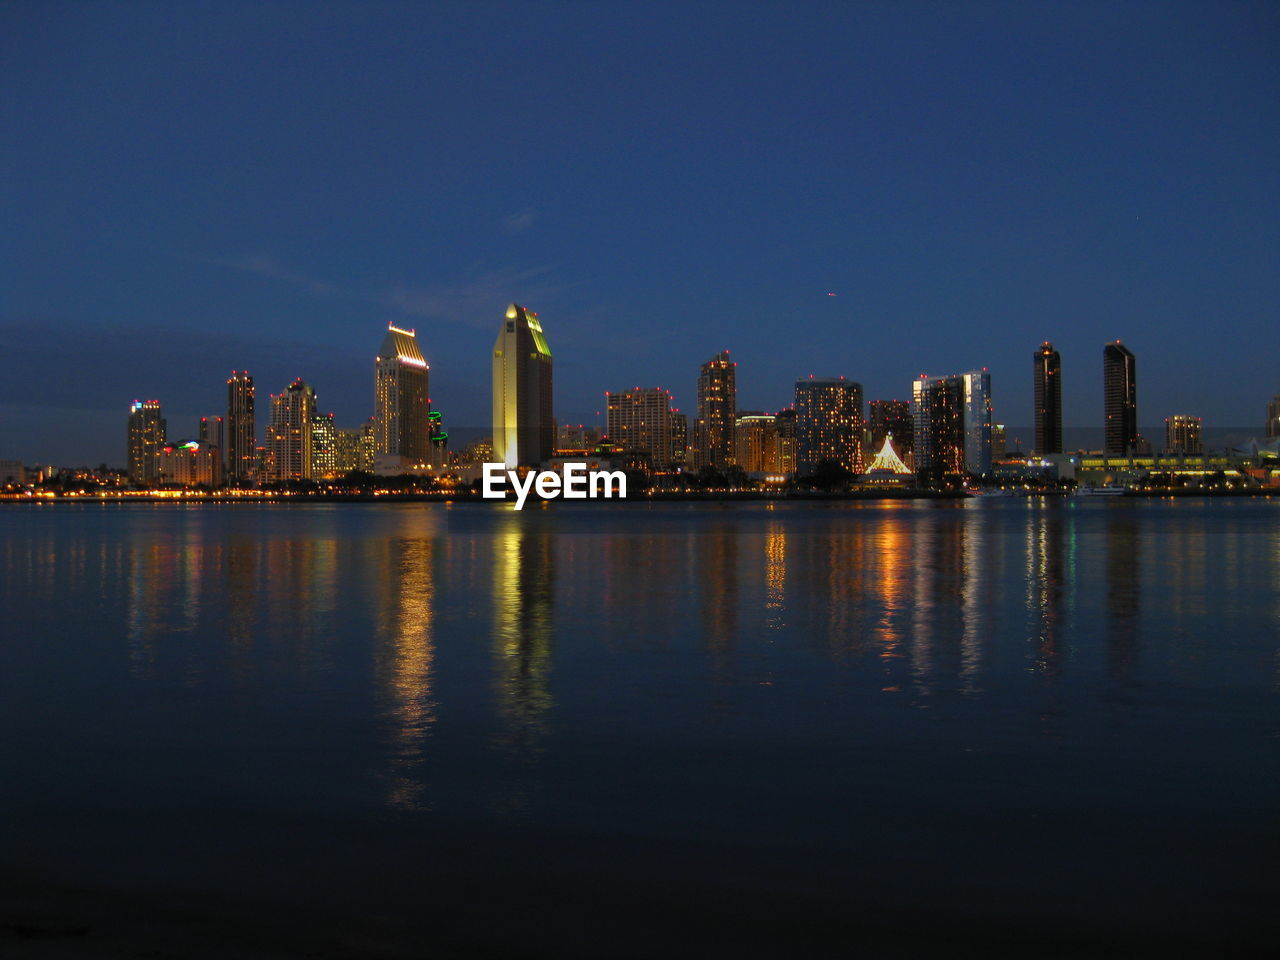 architecture, built structure, skyscraper, building exterior, reflection, cityscape, city, illuminated, waterfront, urban skyline, sky, no people, travel destinations, modern, night, water, outdoors